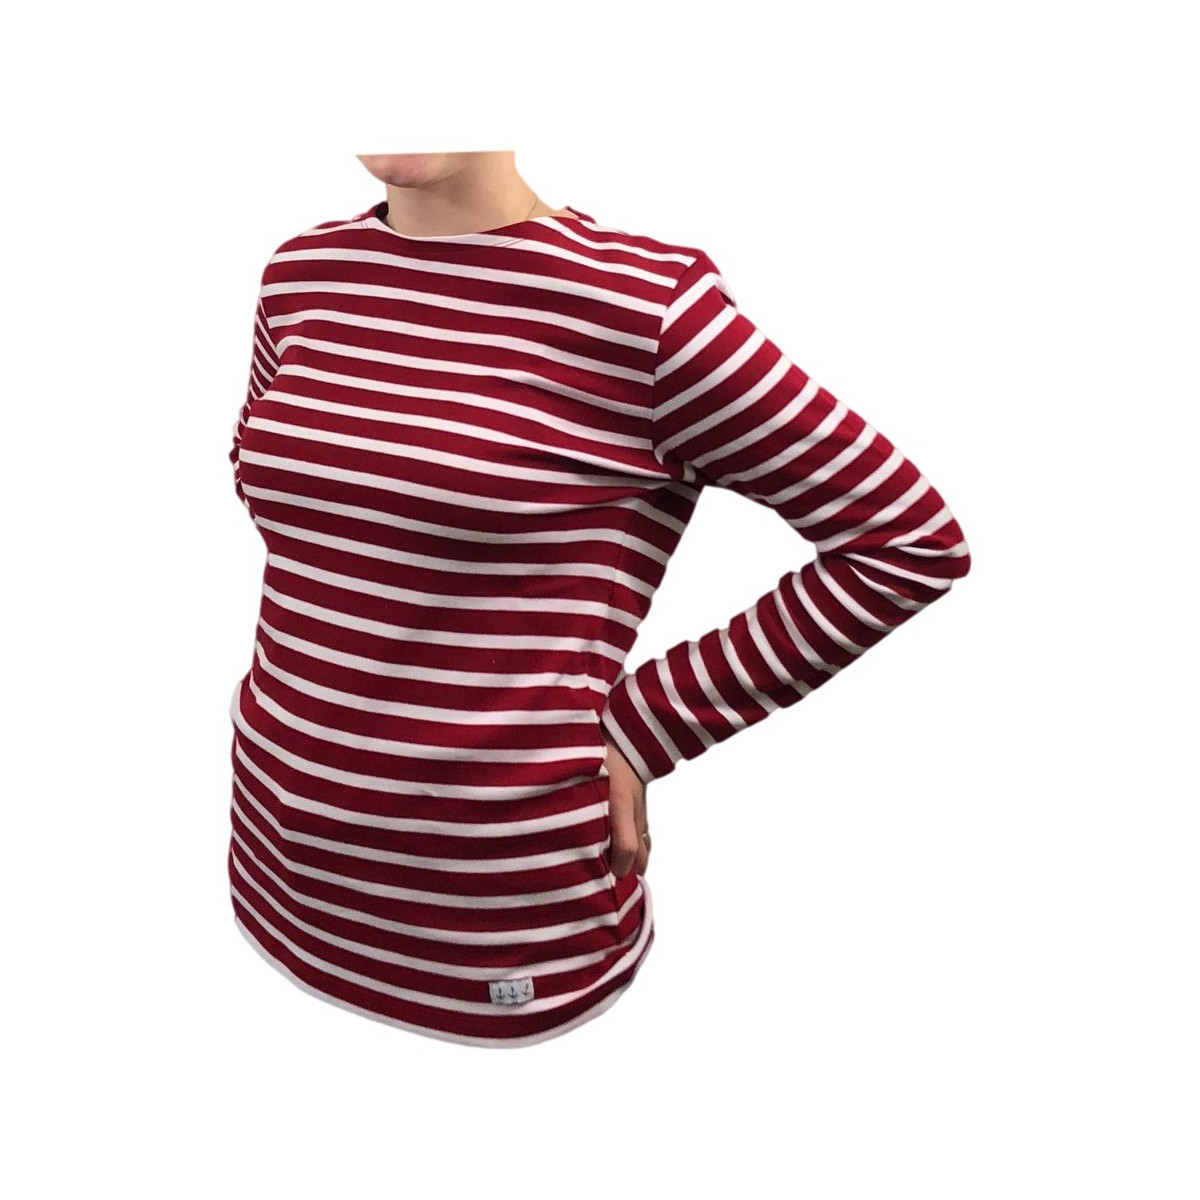 https://www.boutique-augustin.com/1760-thickbox/mariniere-rouge-manches-longues.jpg